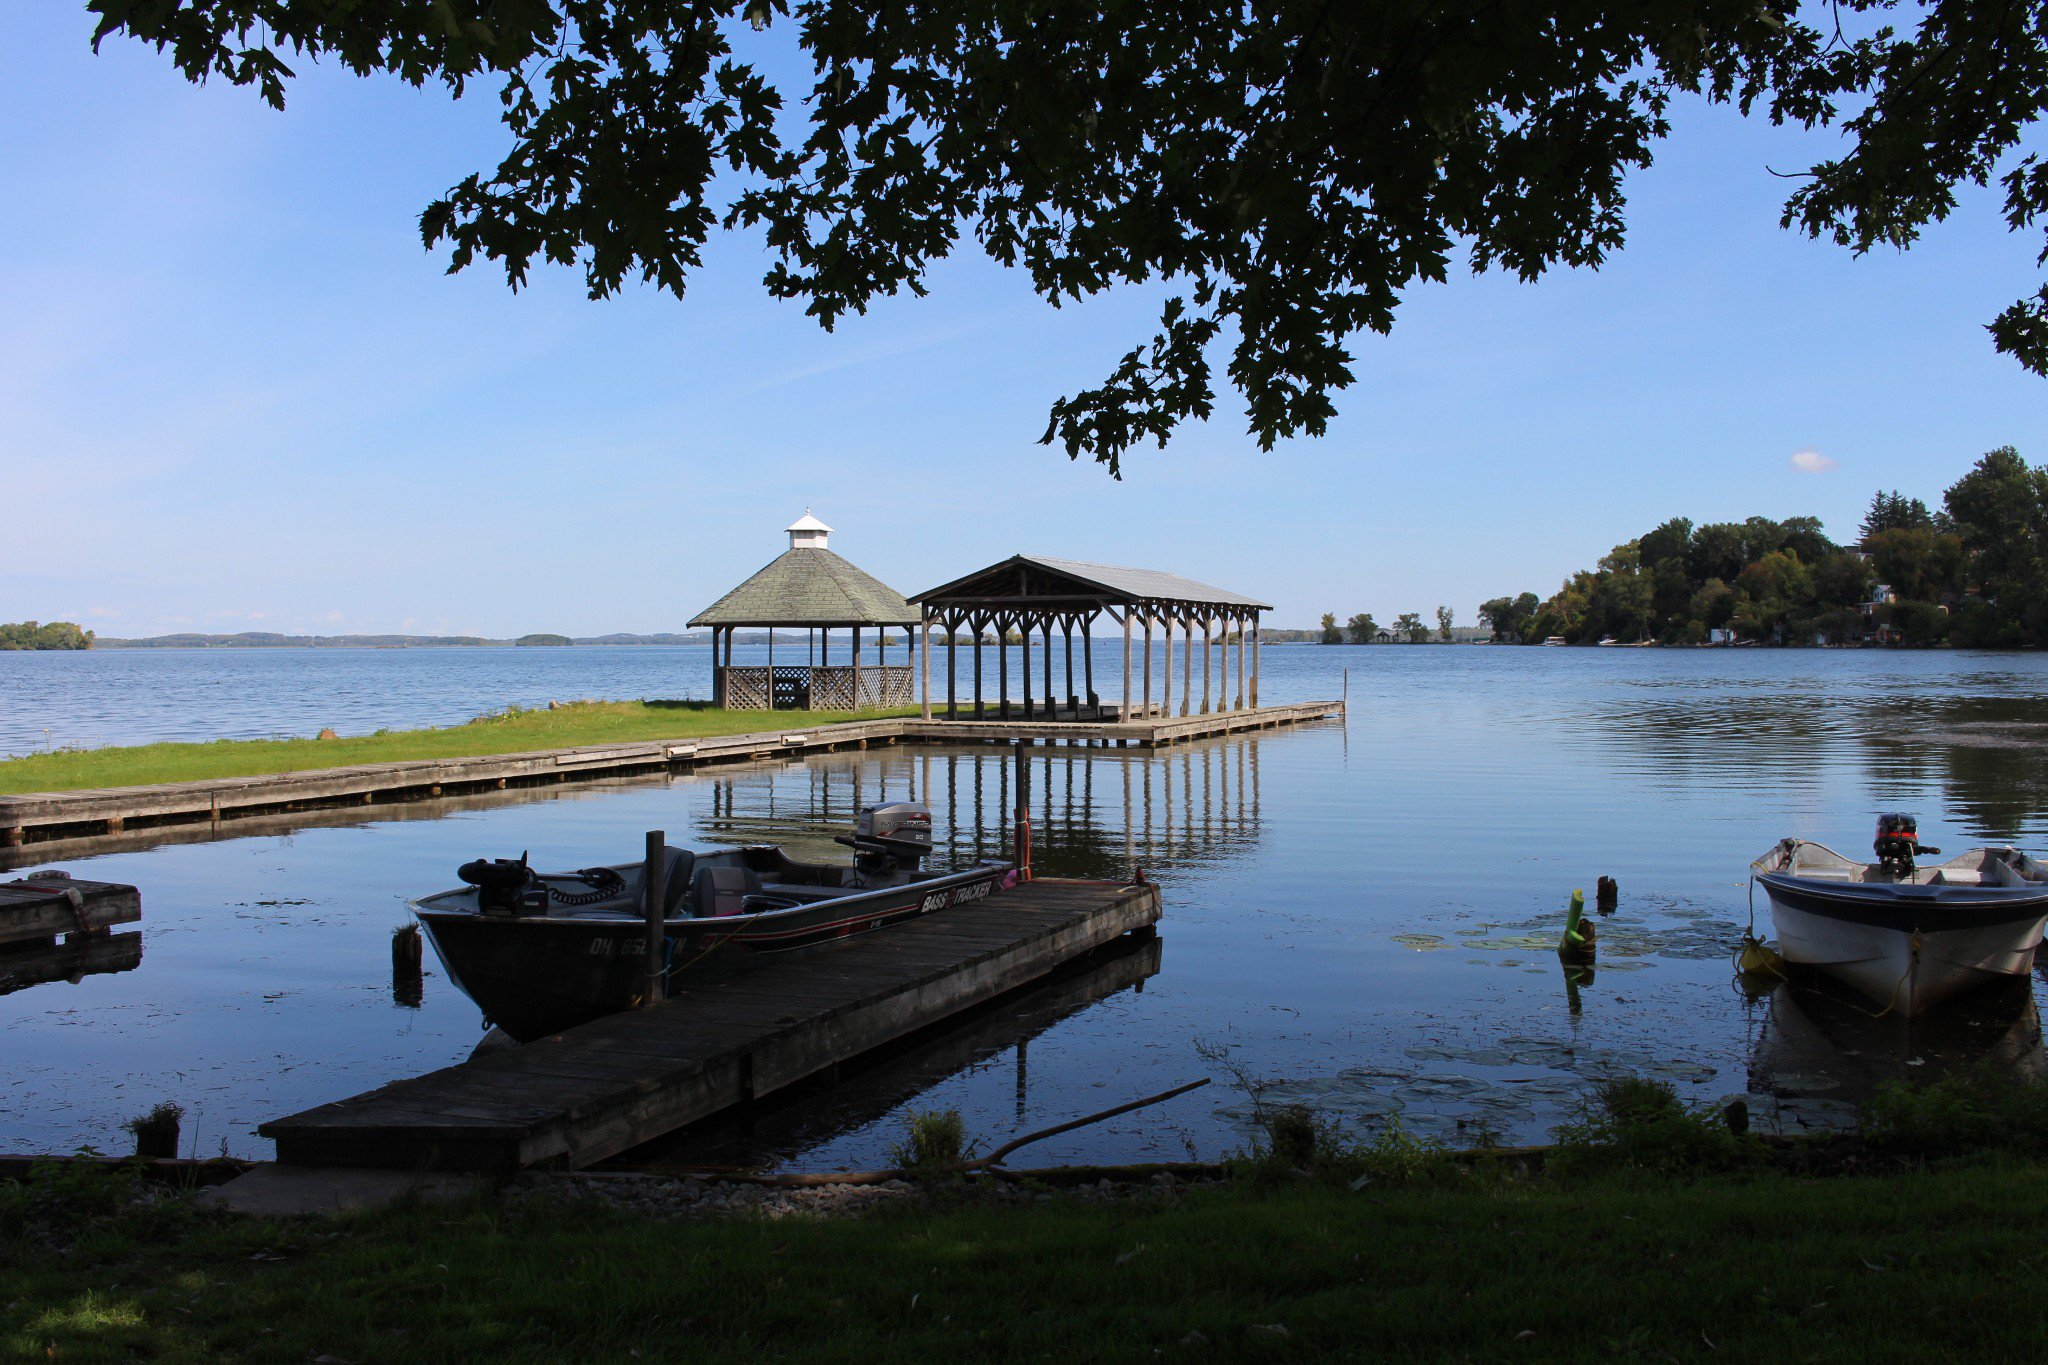 Photo 14: Photos: 6010 Rice Lake Scenic Drive in Harwood: Other for sale : MLS®# 223405